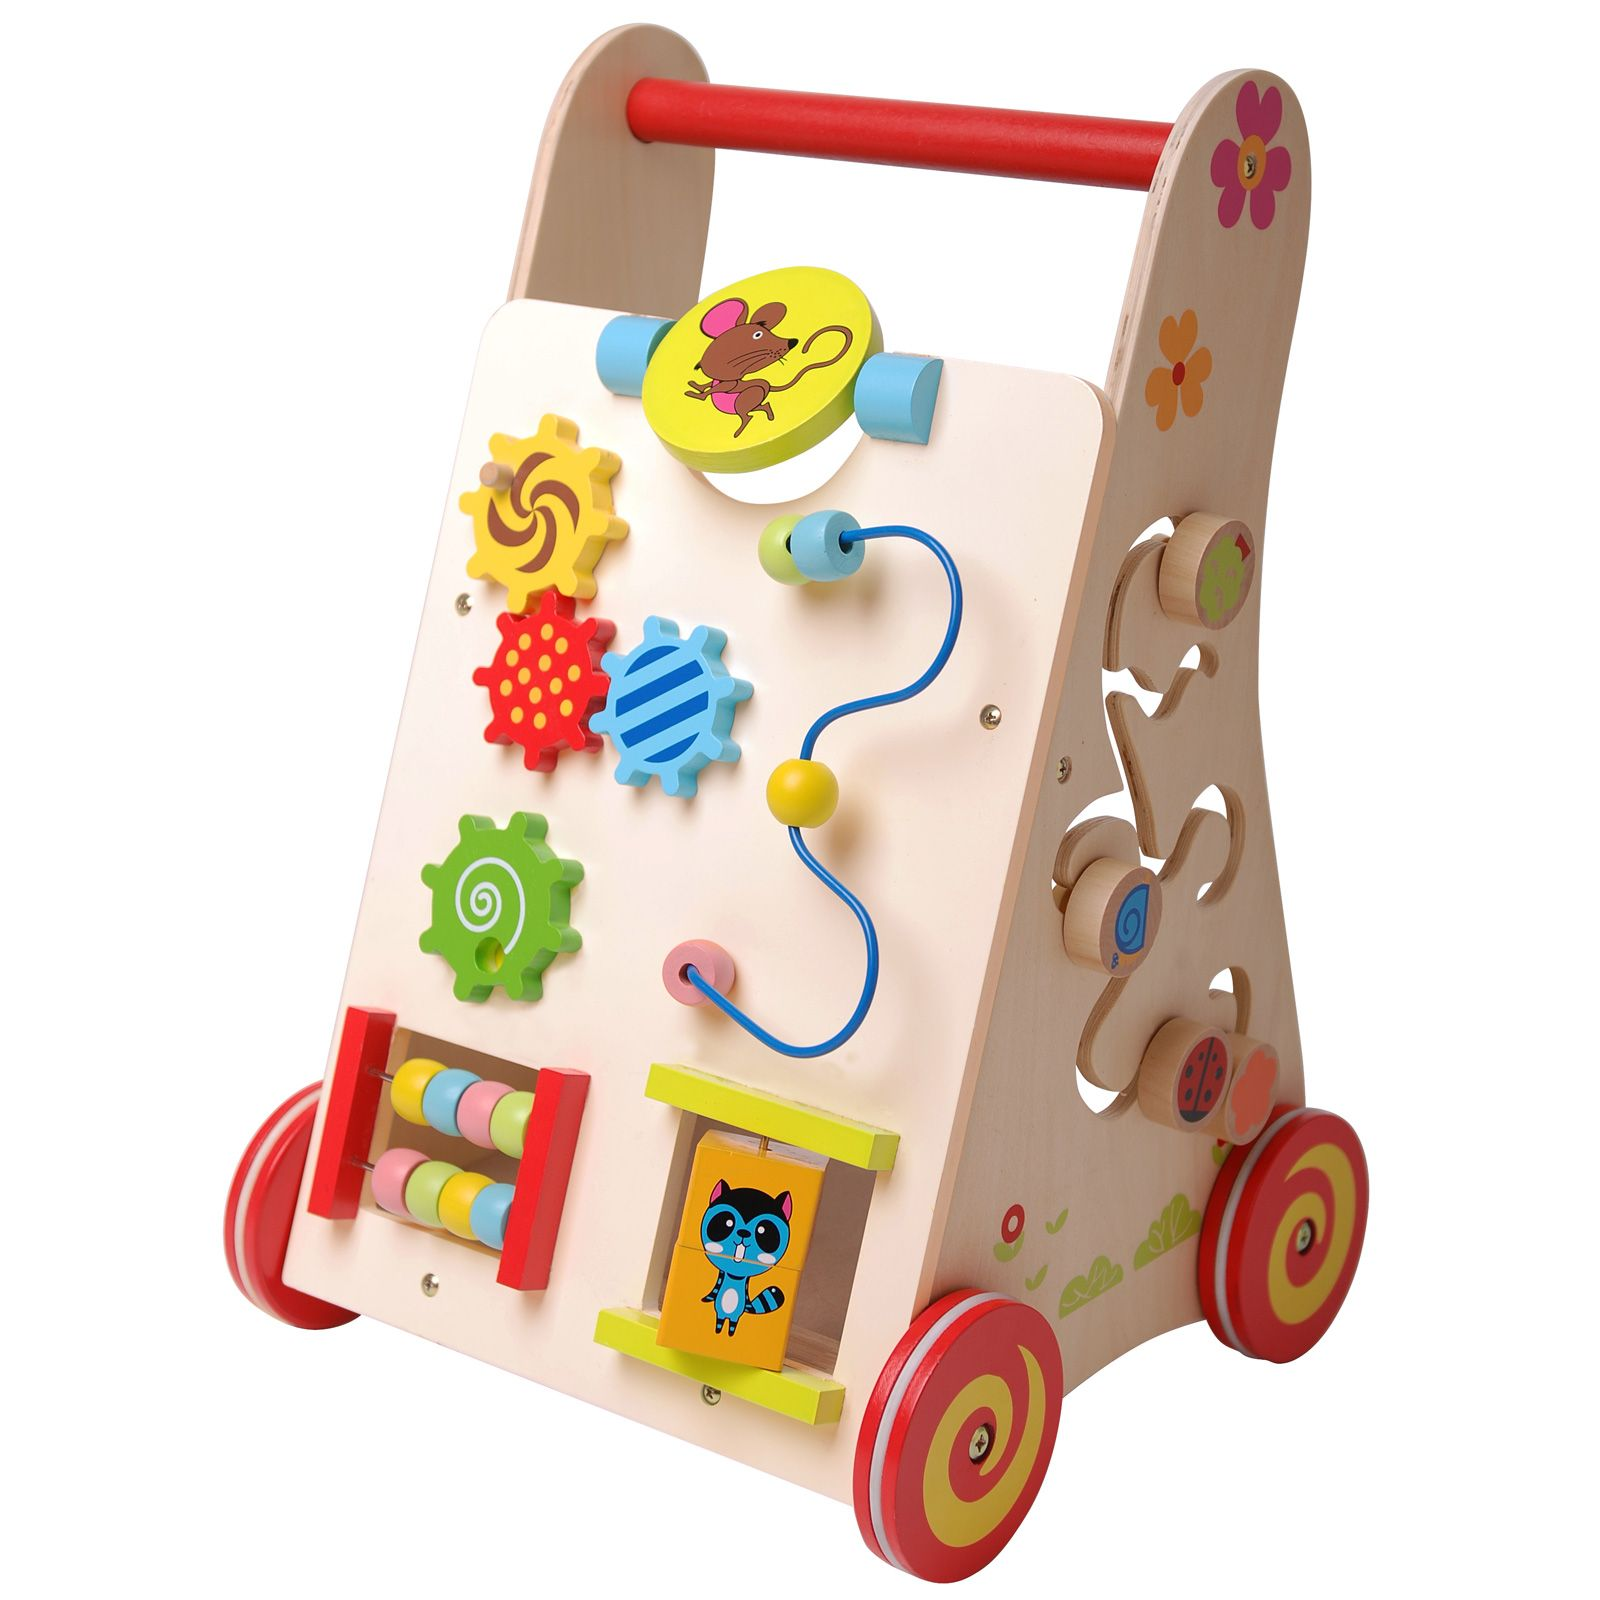 Cool bedroom furniture for girls - Details About Wooden Multi Activity Walker New Boxed Kids Toy